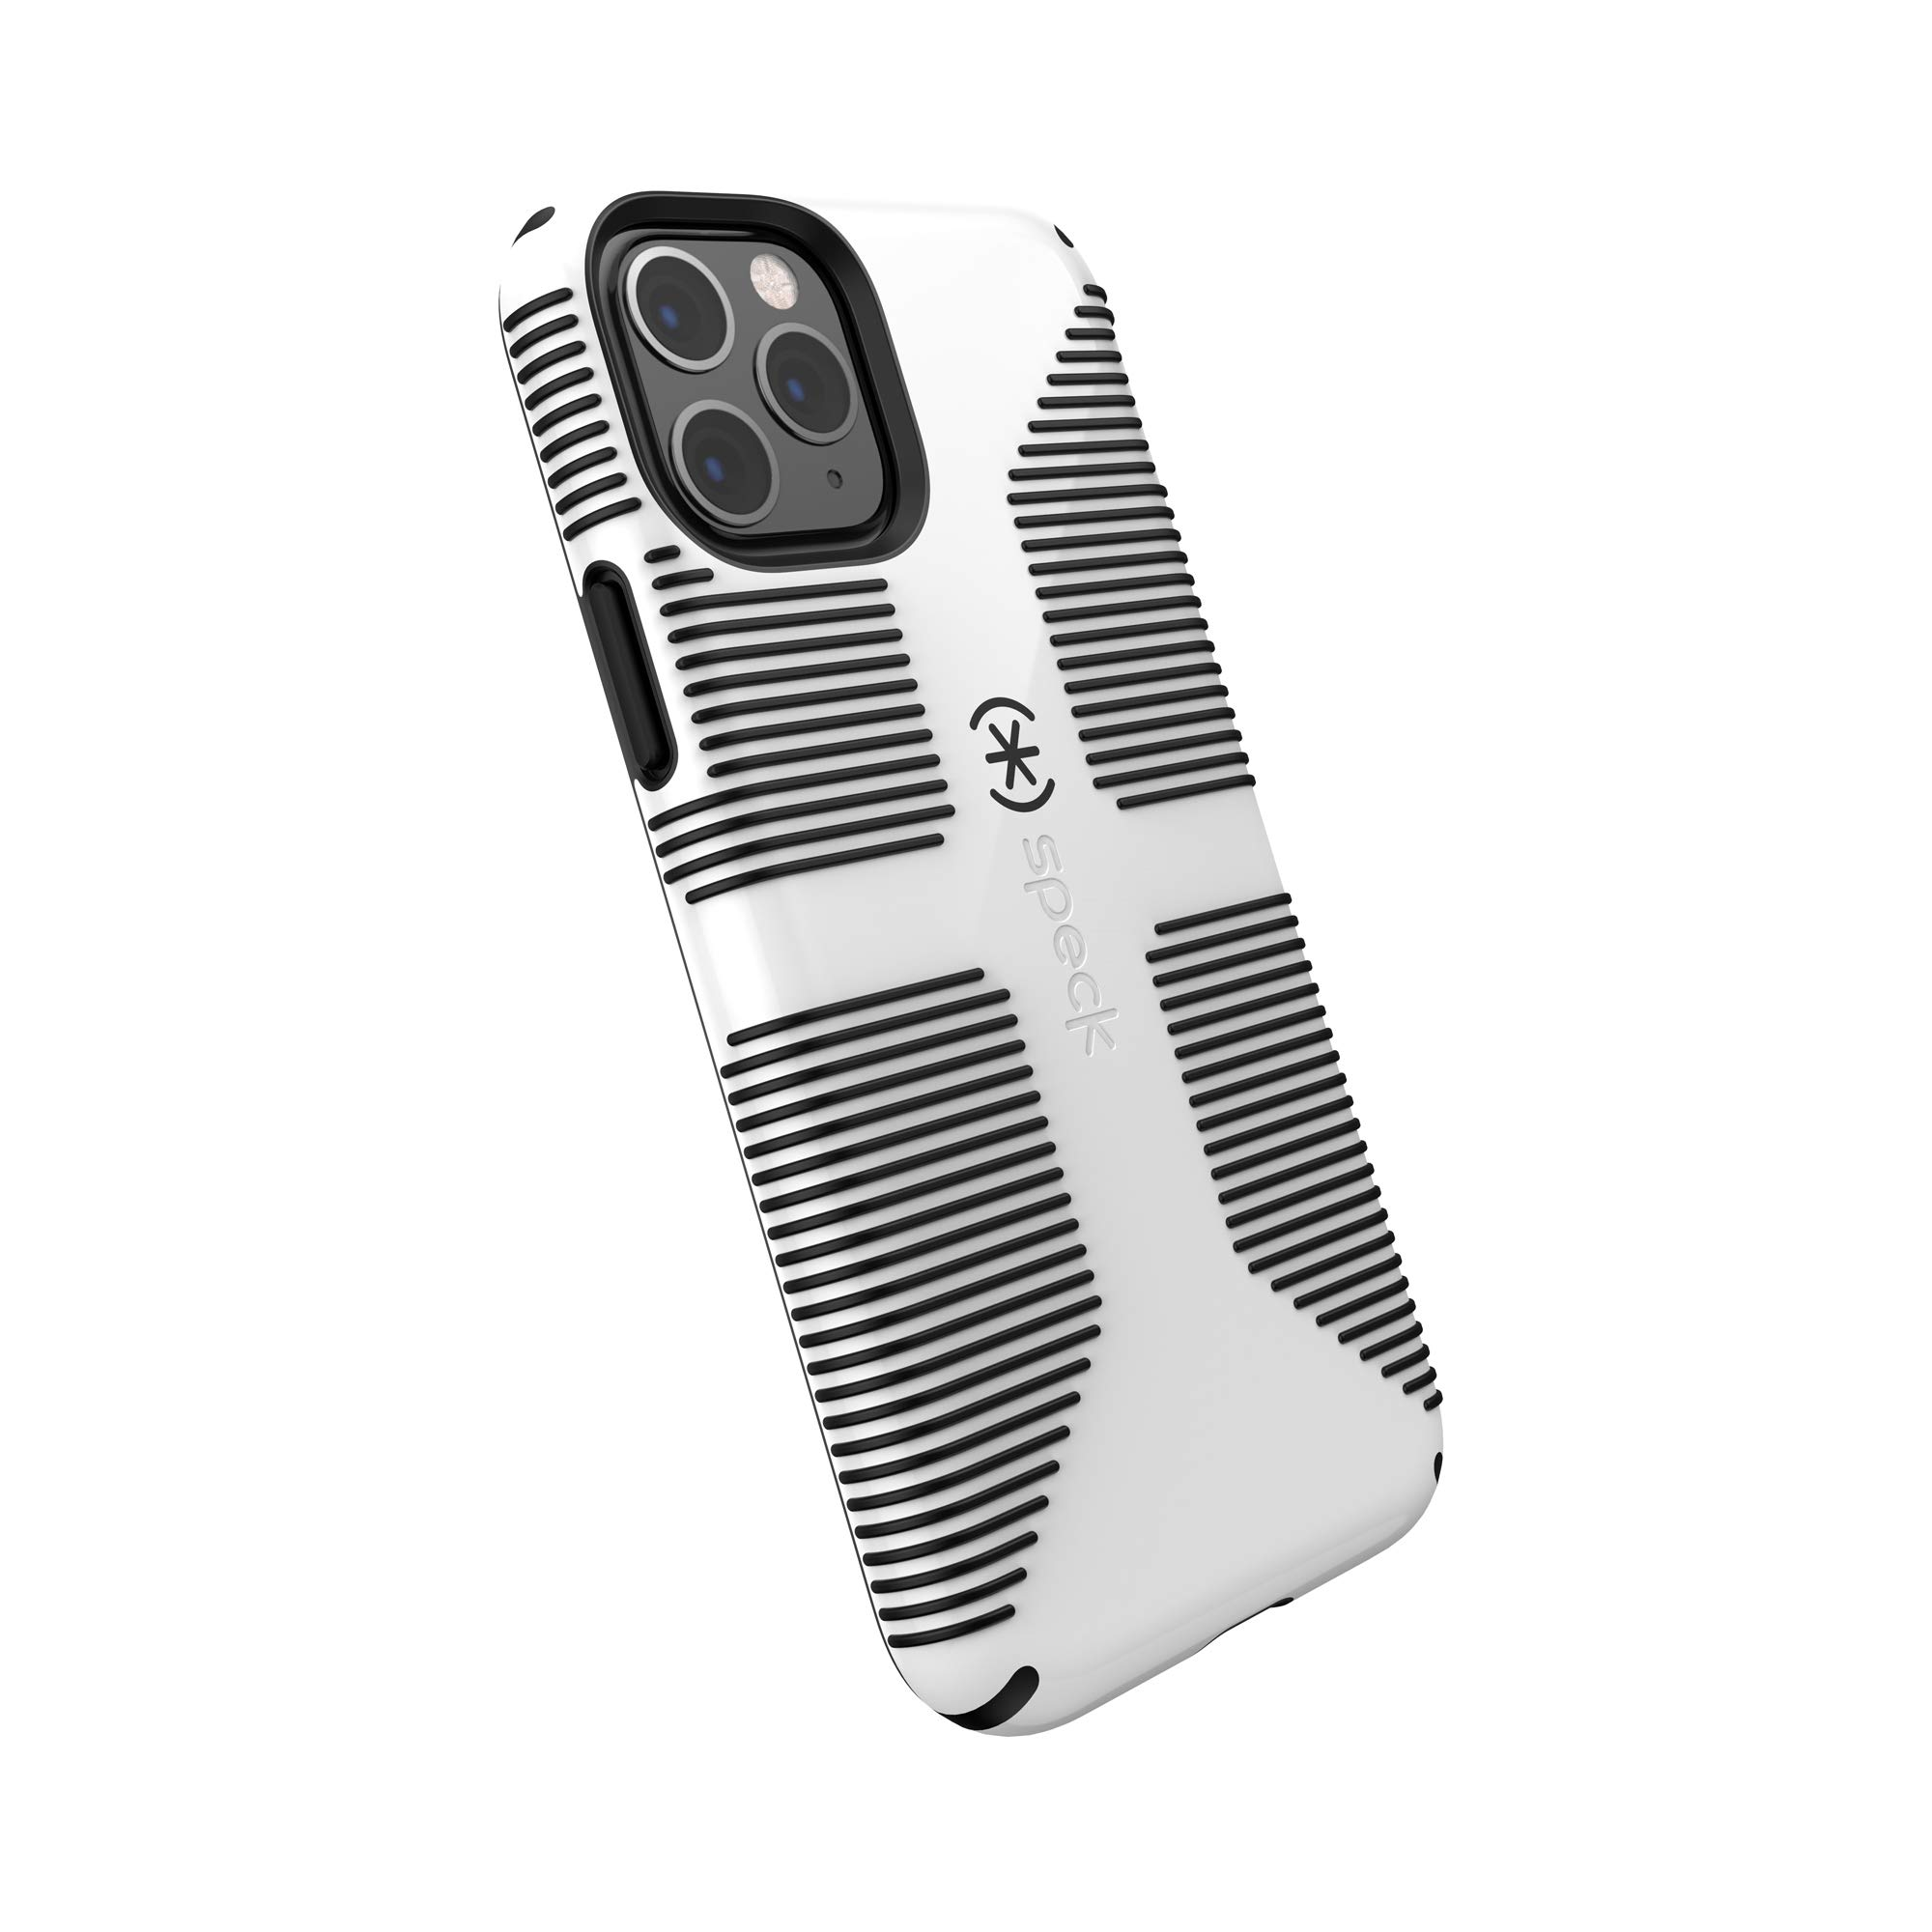 Speck CandyShell Grip iPhone 11 Pro Case, White/Black